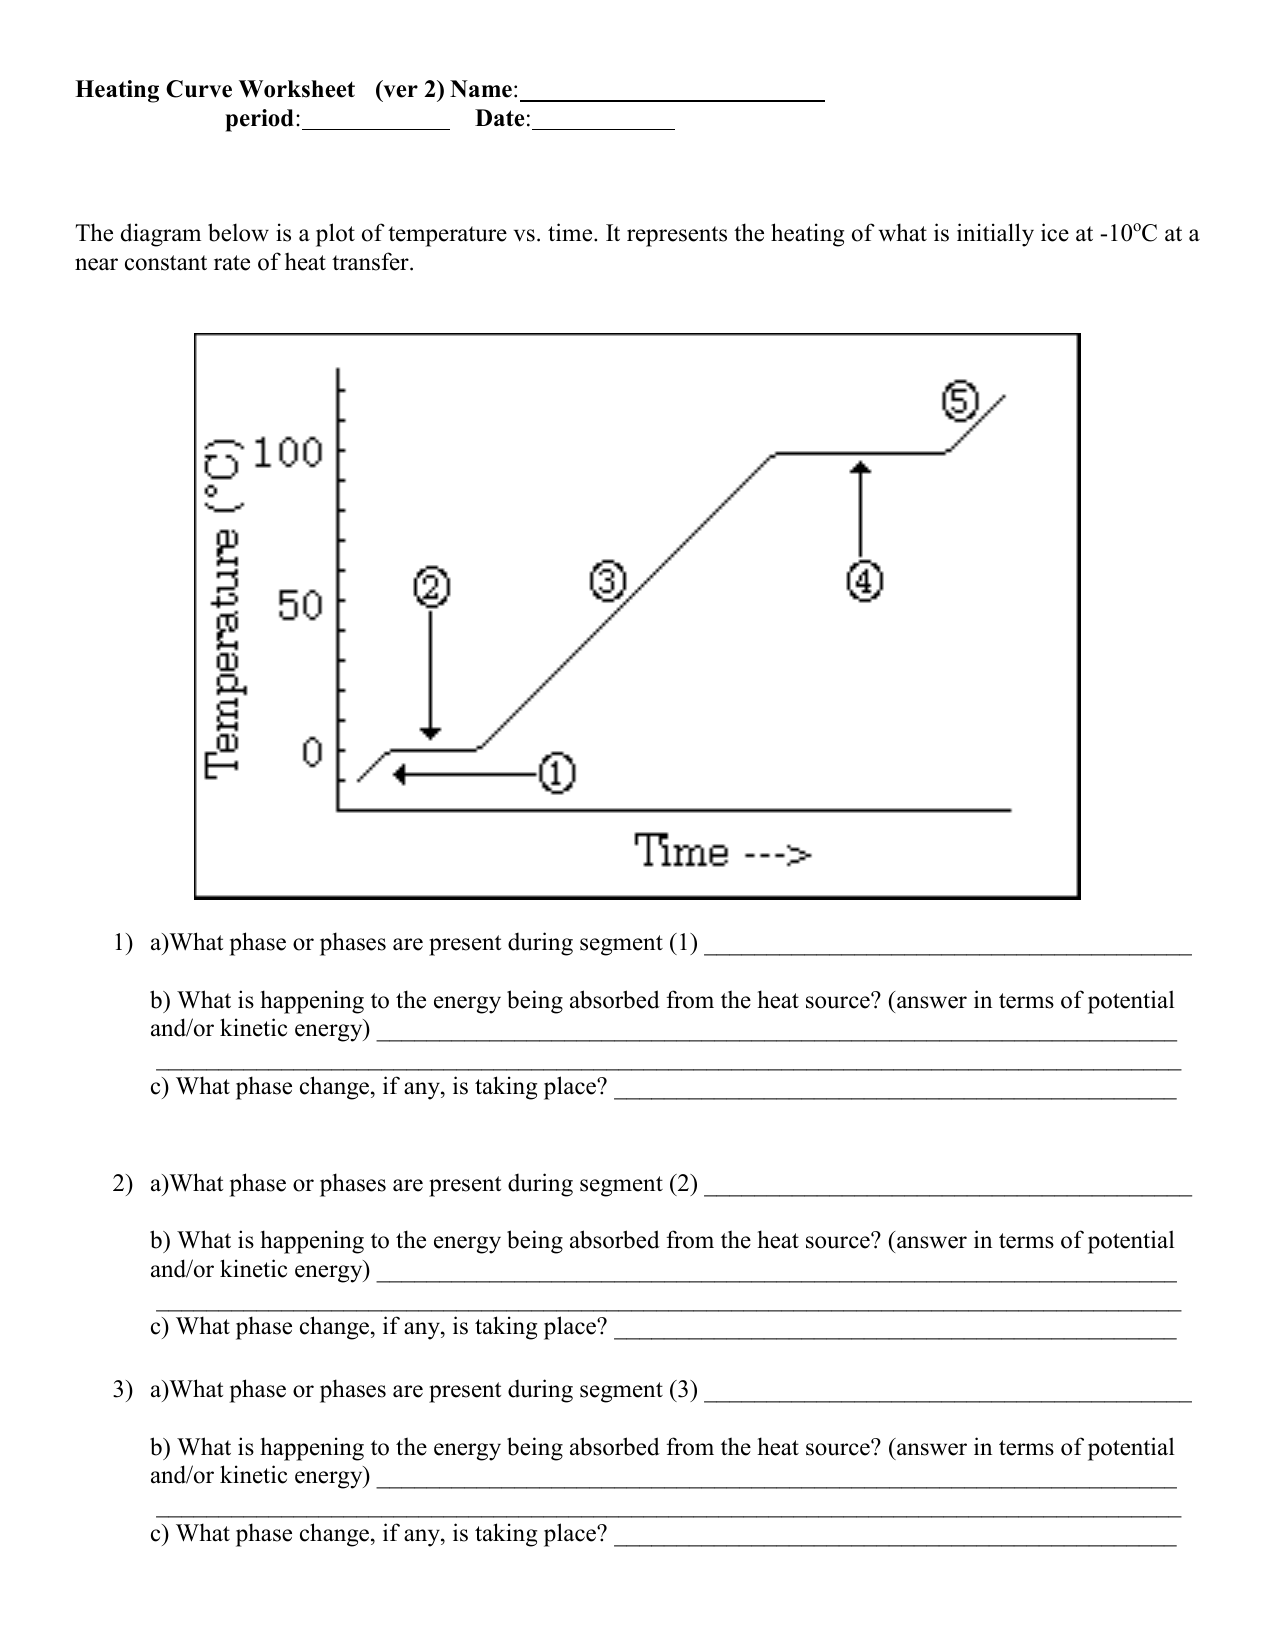 Heating Curve Worksheet